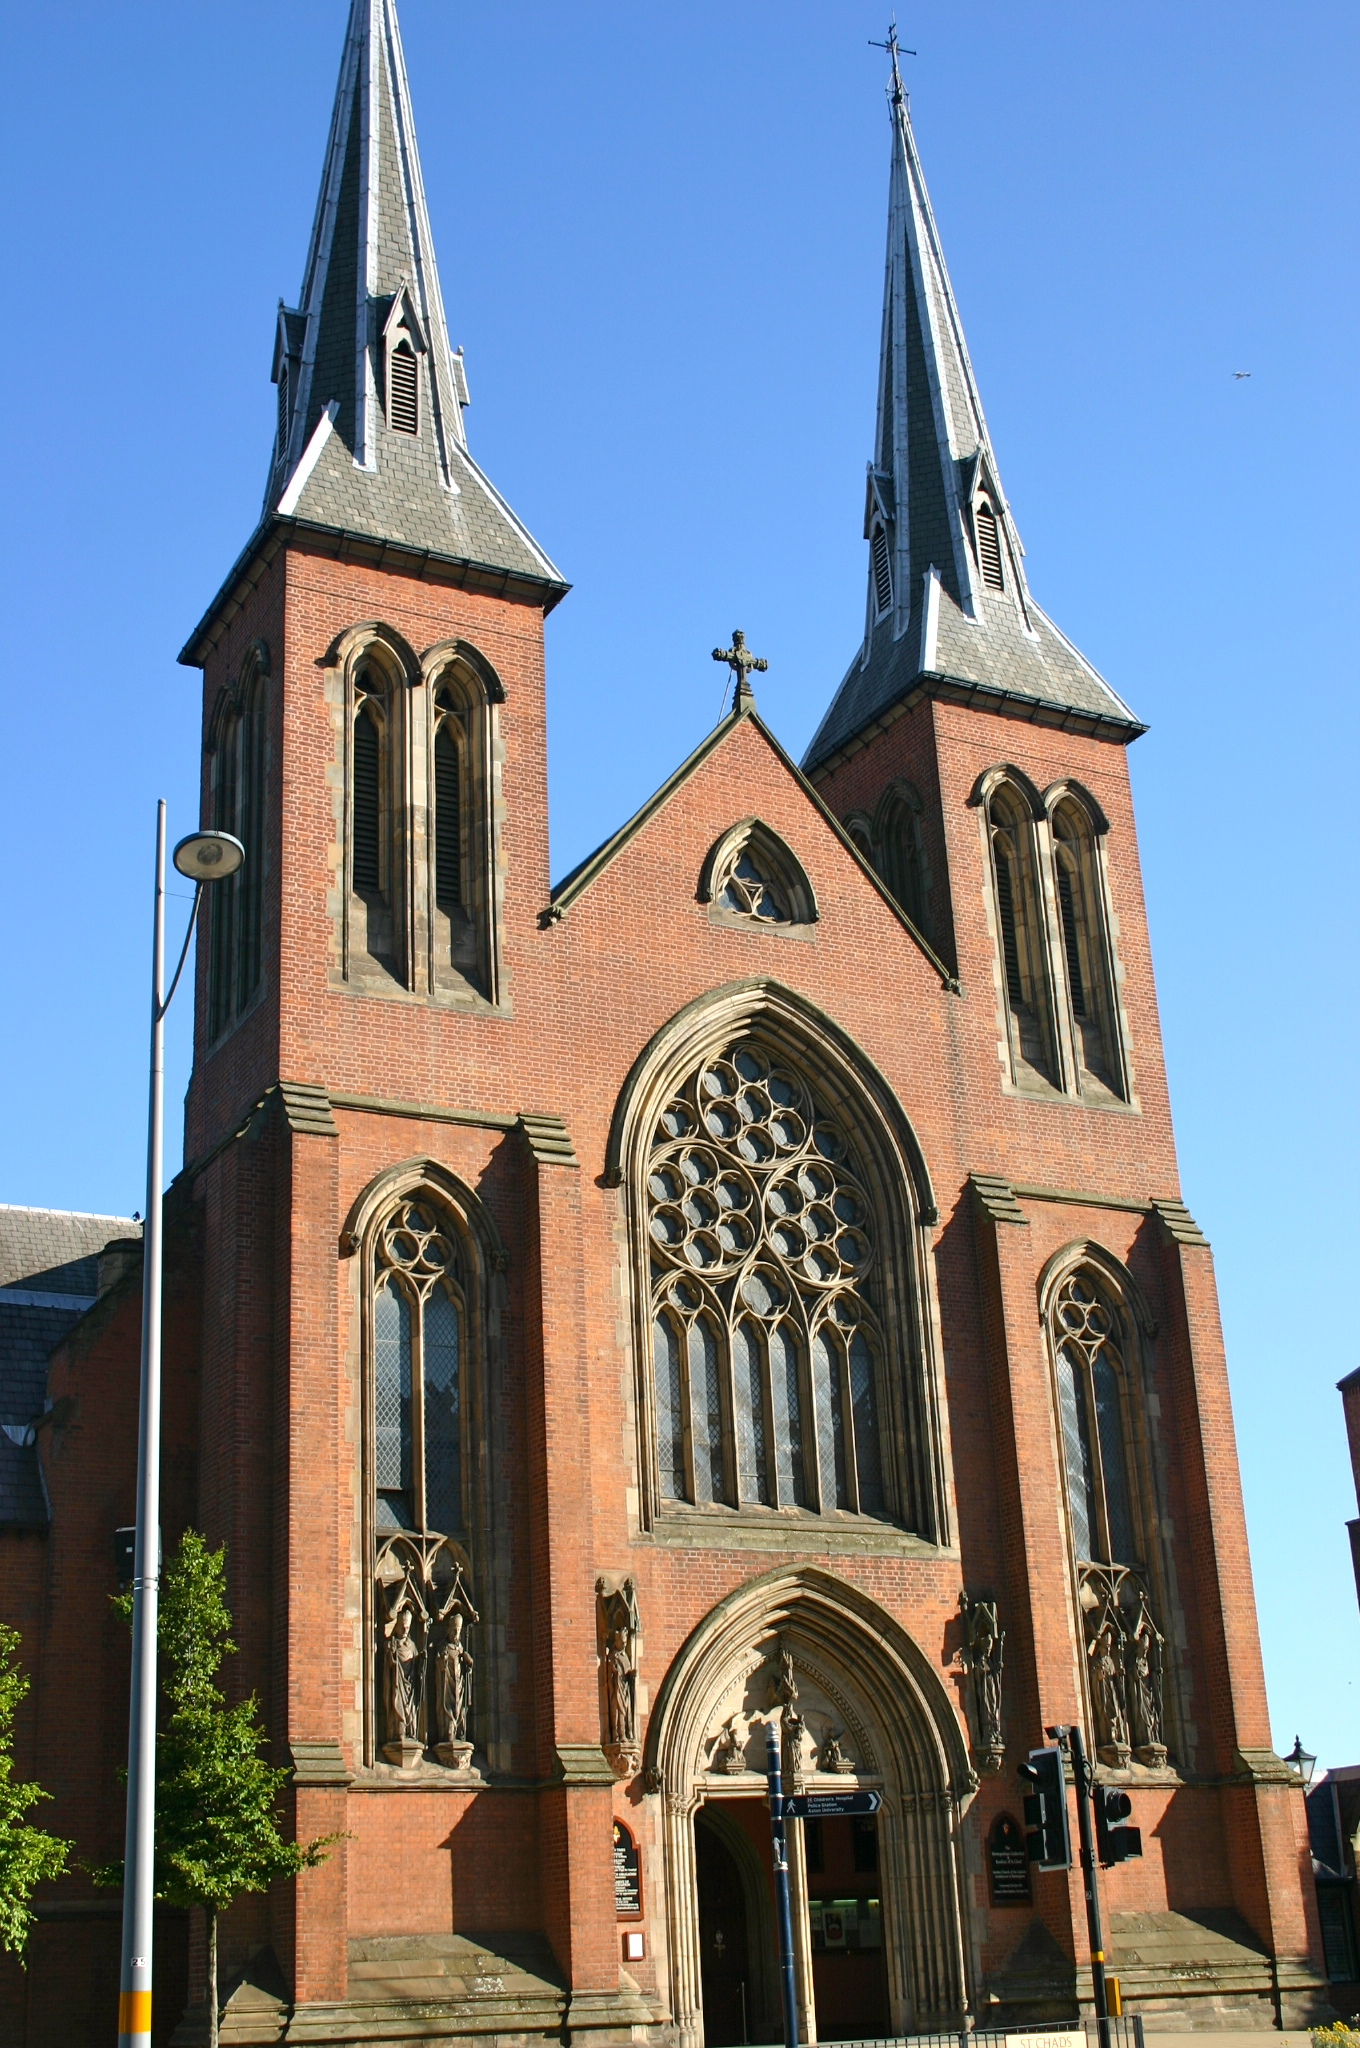 Saint Chad's Cathedral by Augustus Pugin, joint architect of the Palace of Westminster, was spared by the City Council.